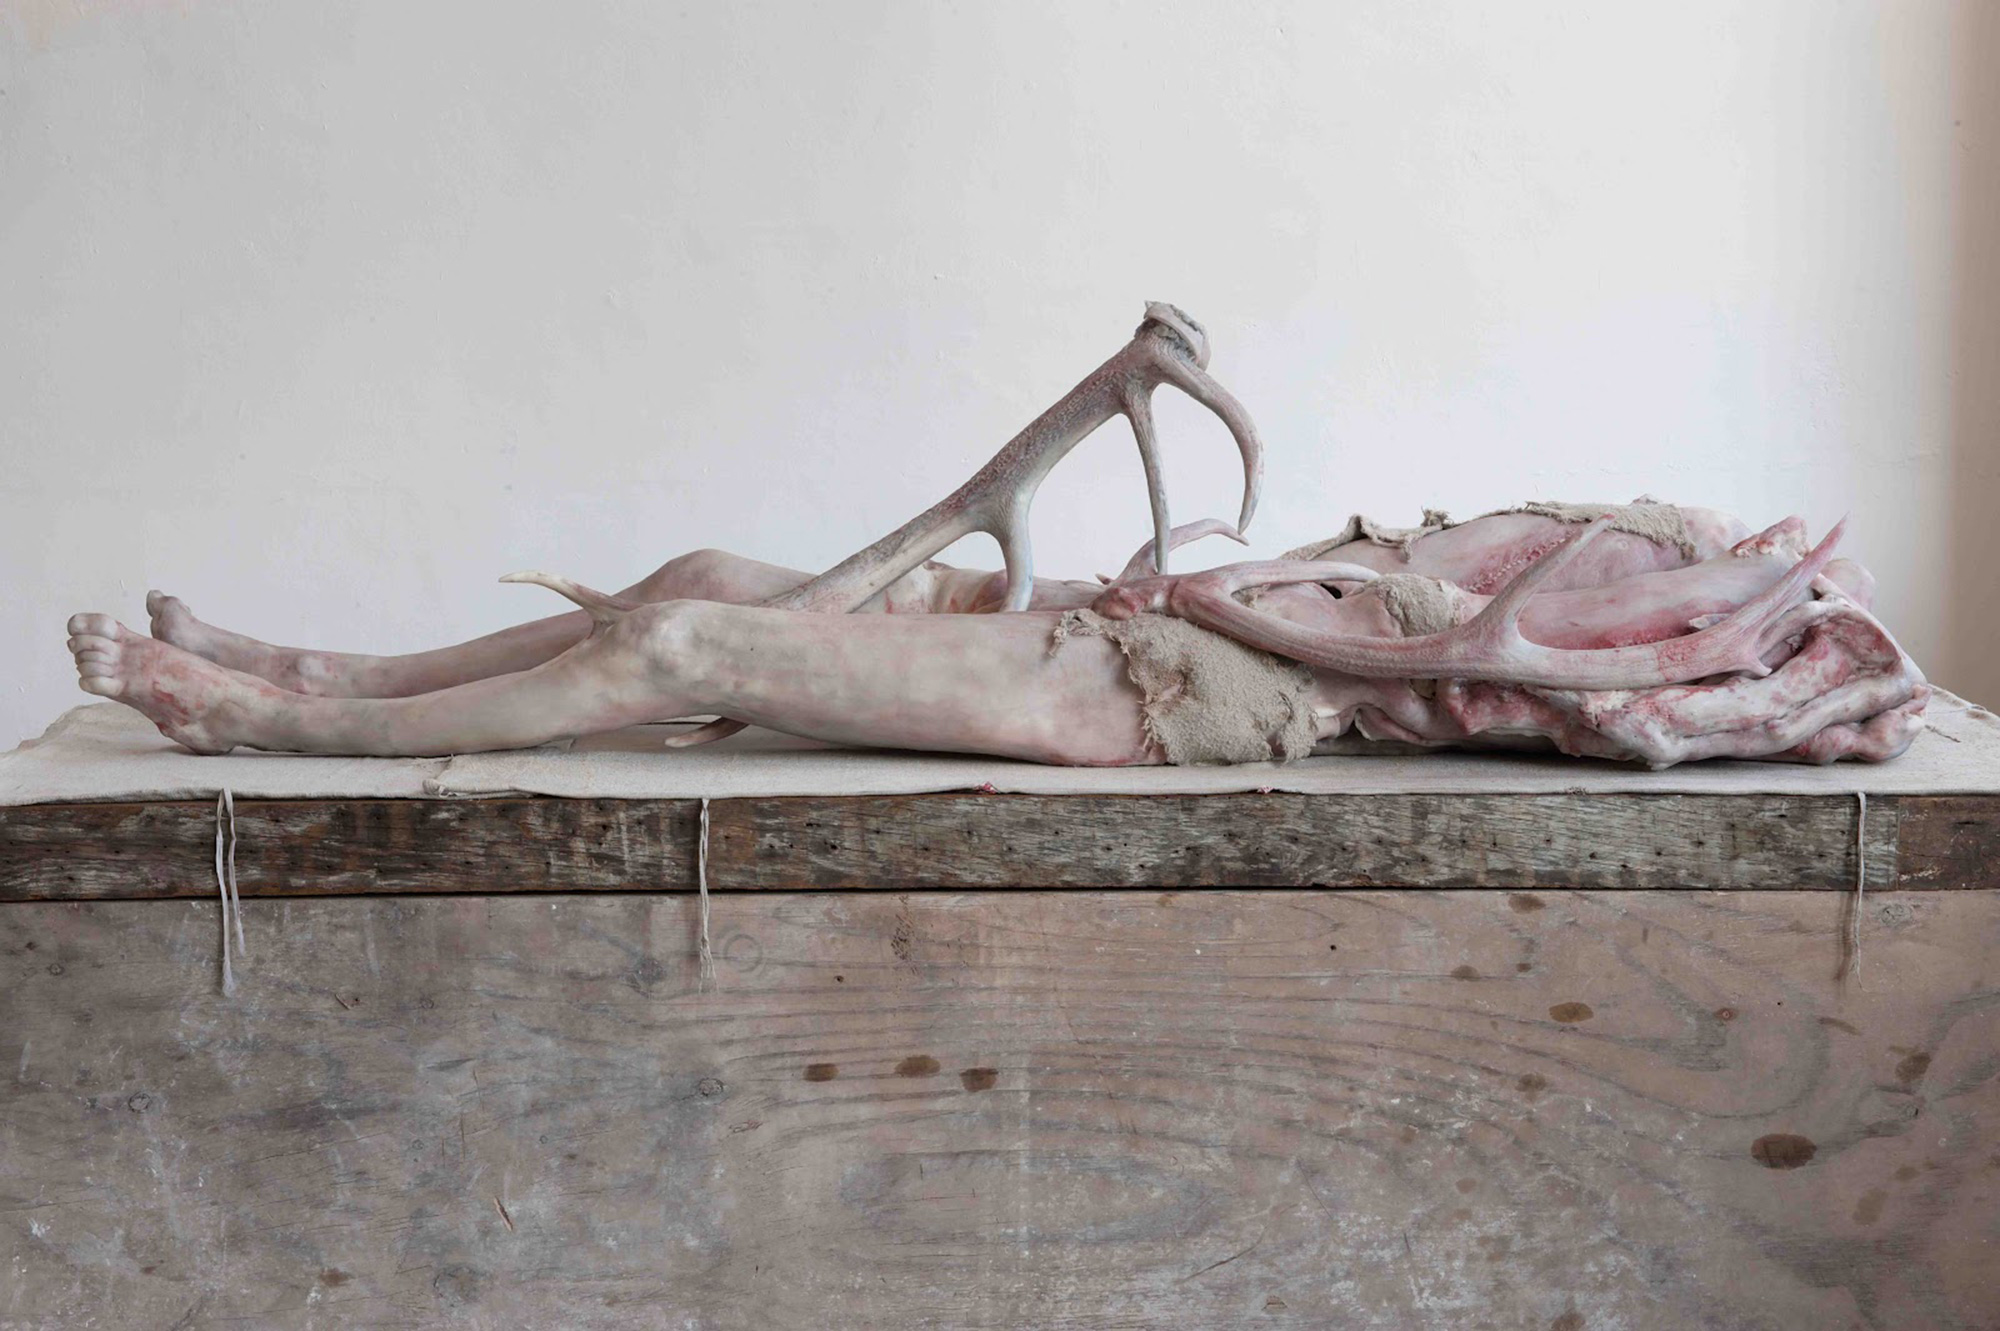 Tenderness for the Dead: Sculptures by Berlinde de Bruyckere